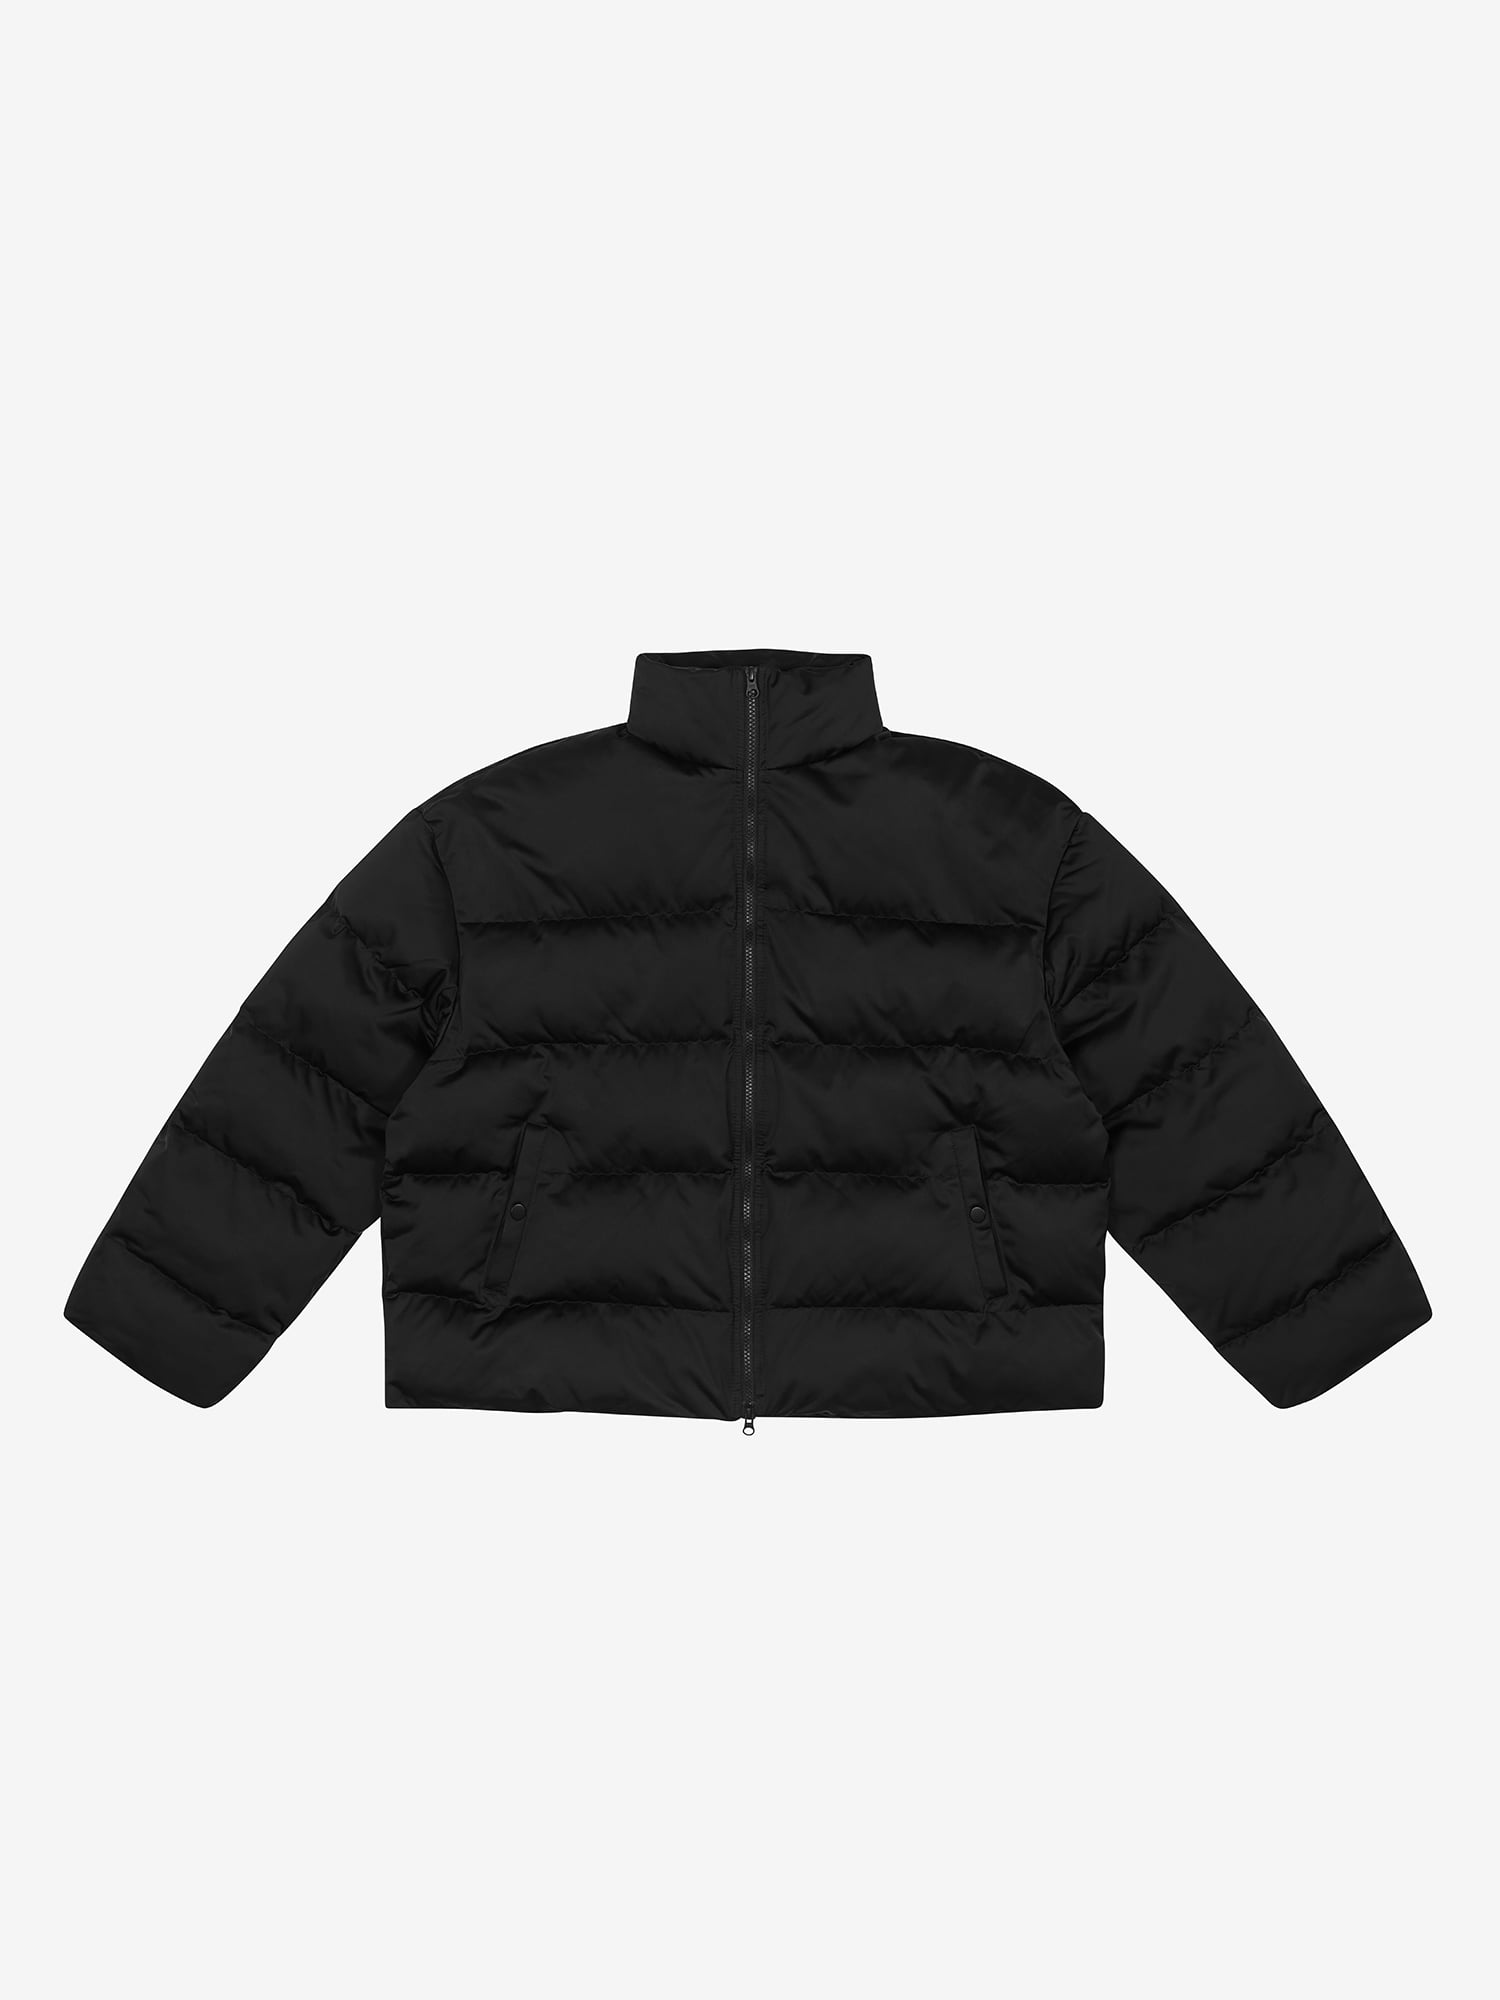 Oversized Padded Jacket - Black